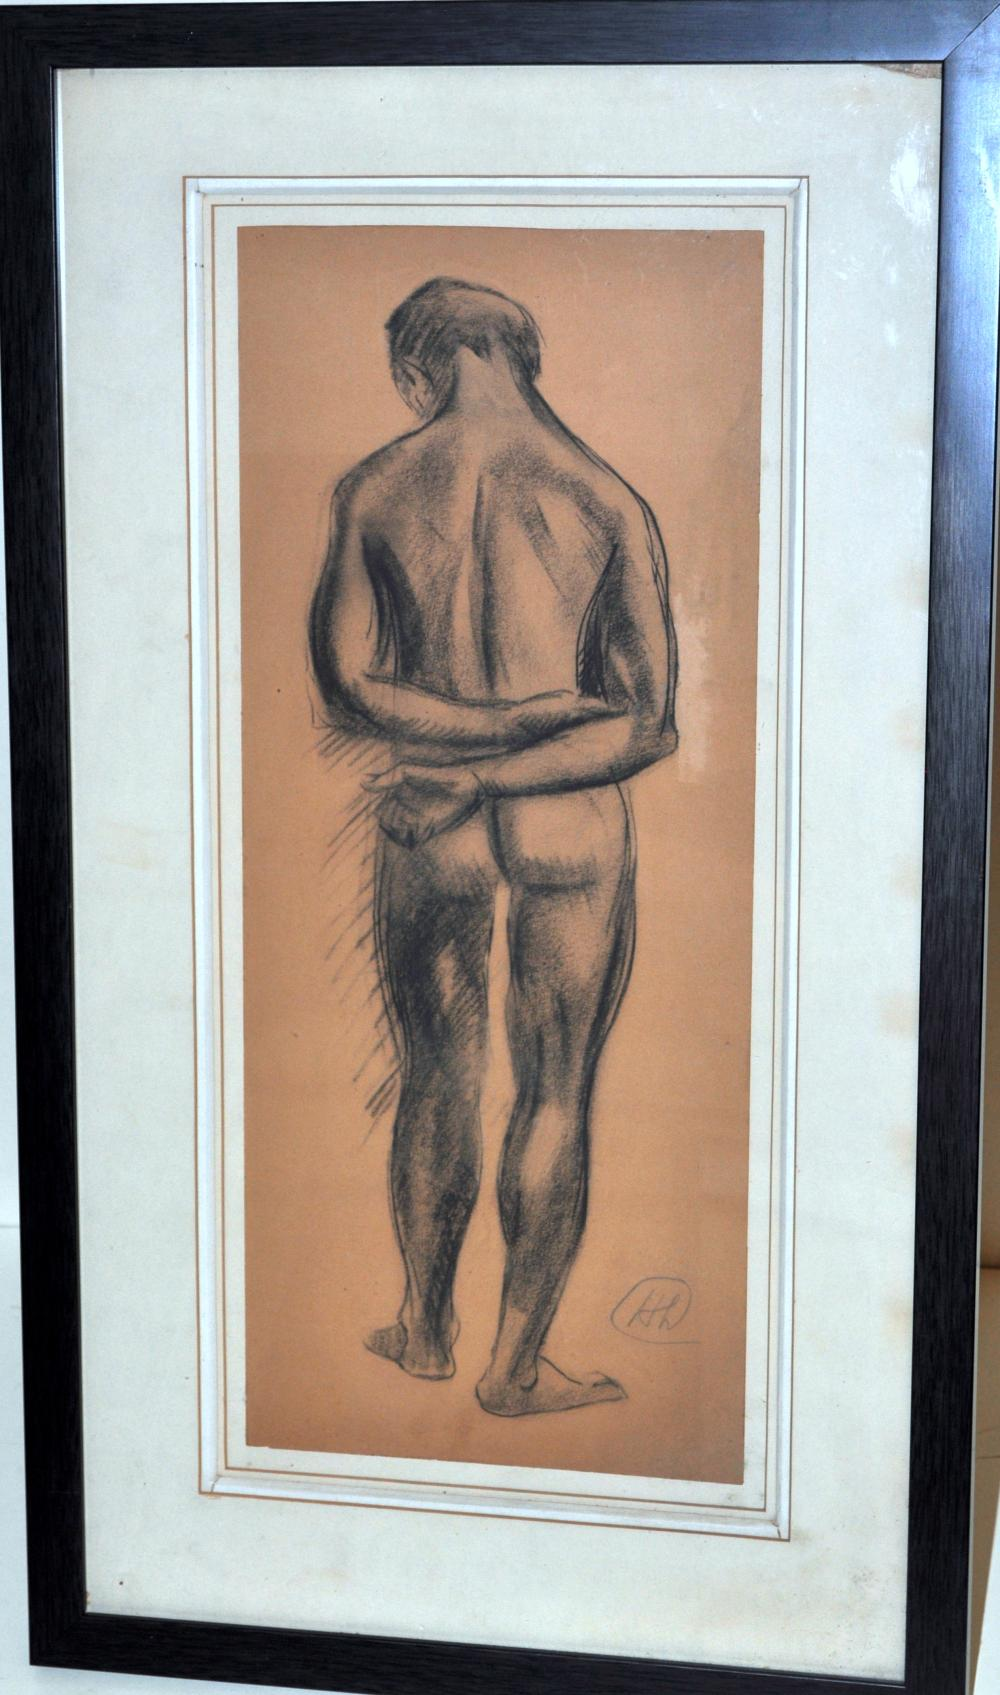 Lot 98: Hayley Lever nude sketch framed